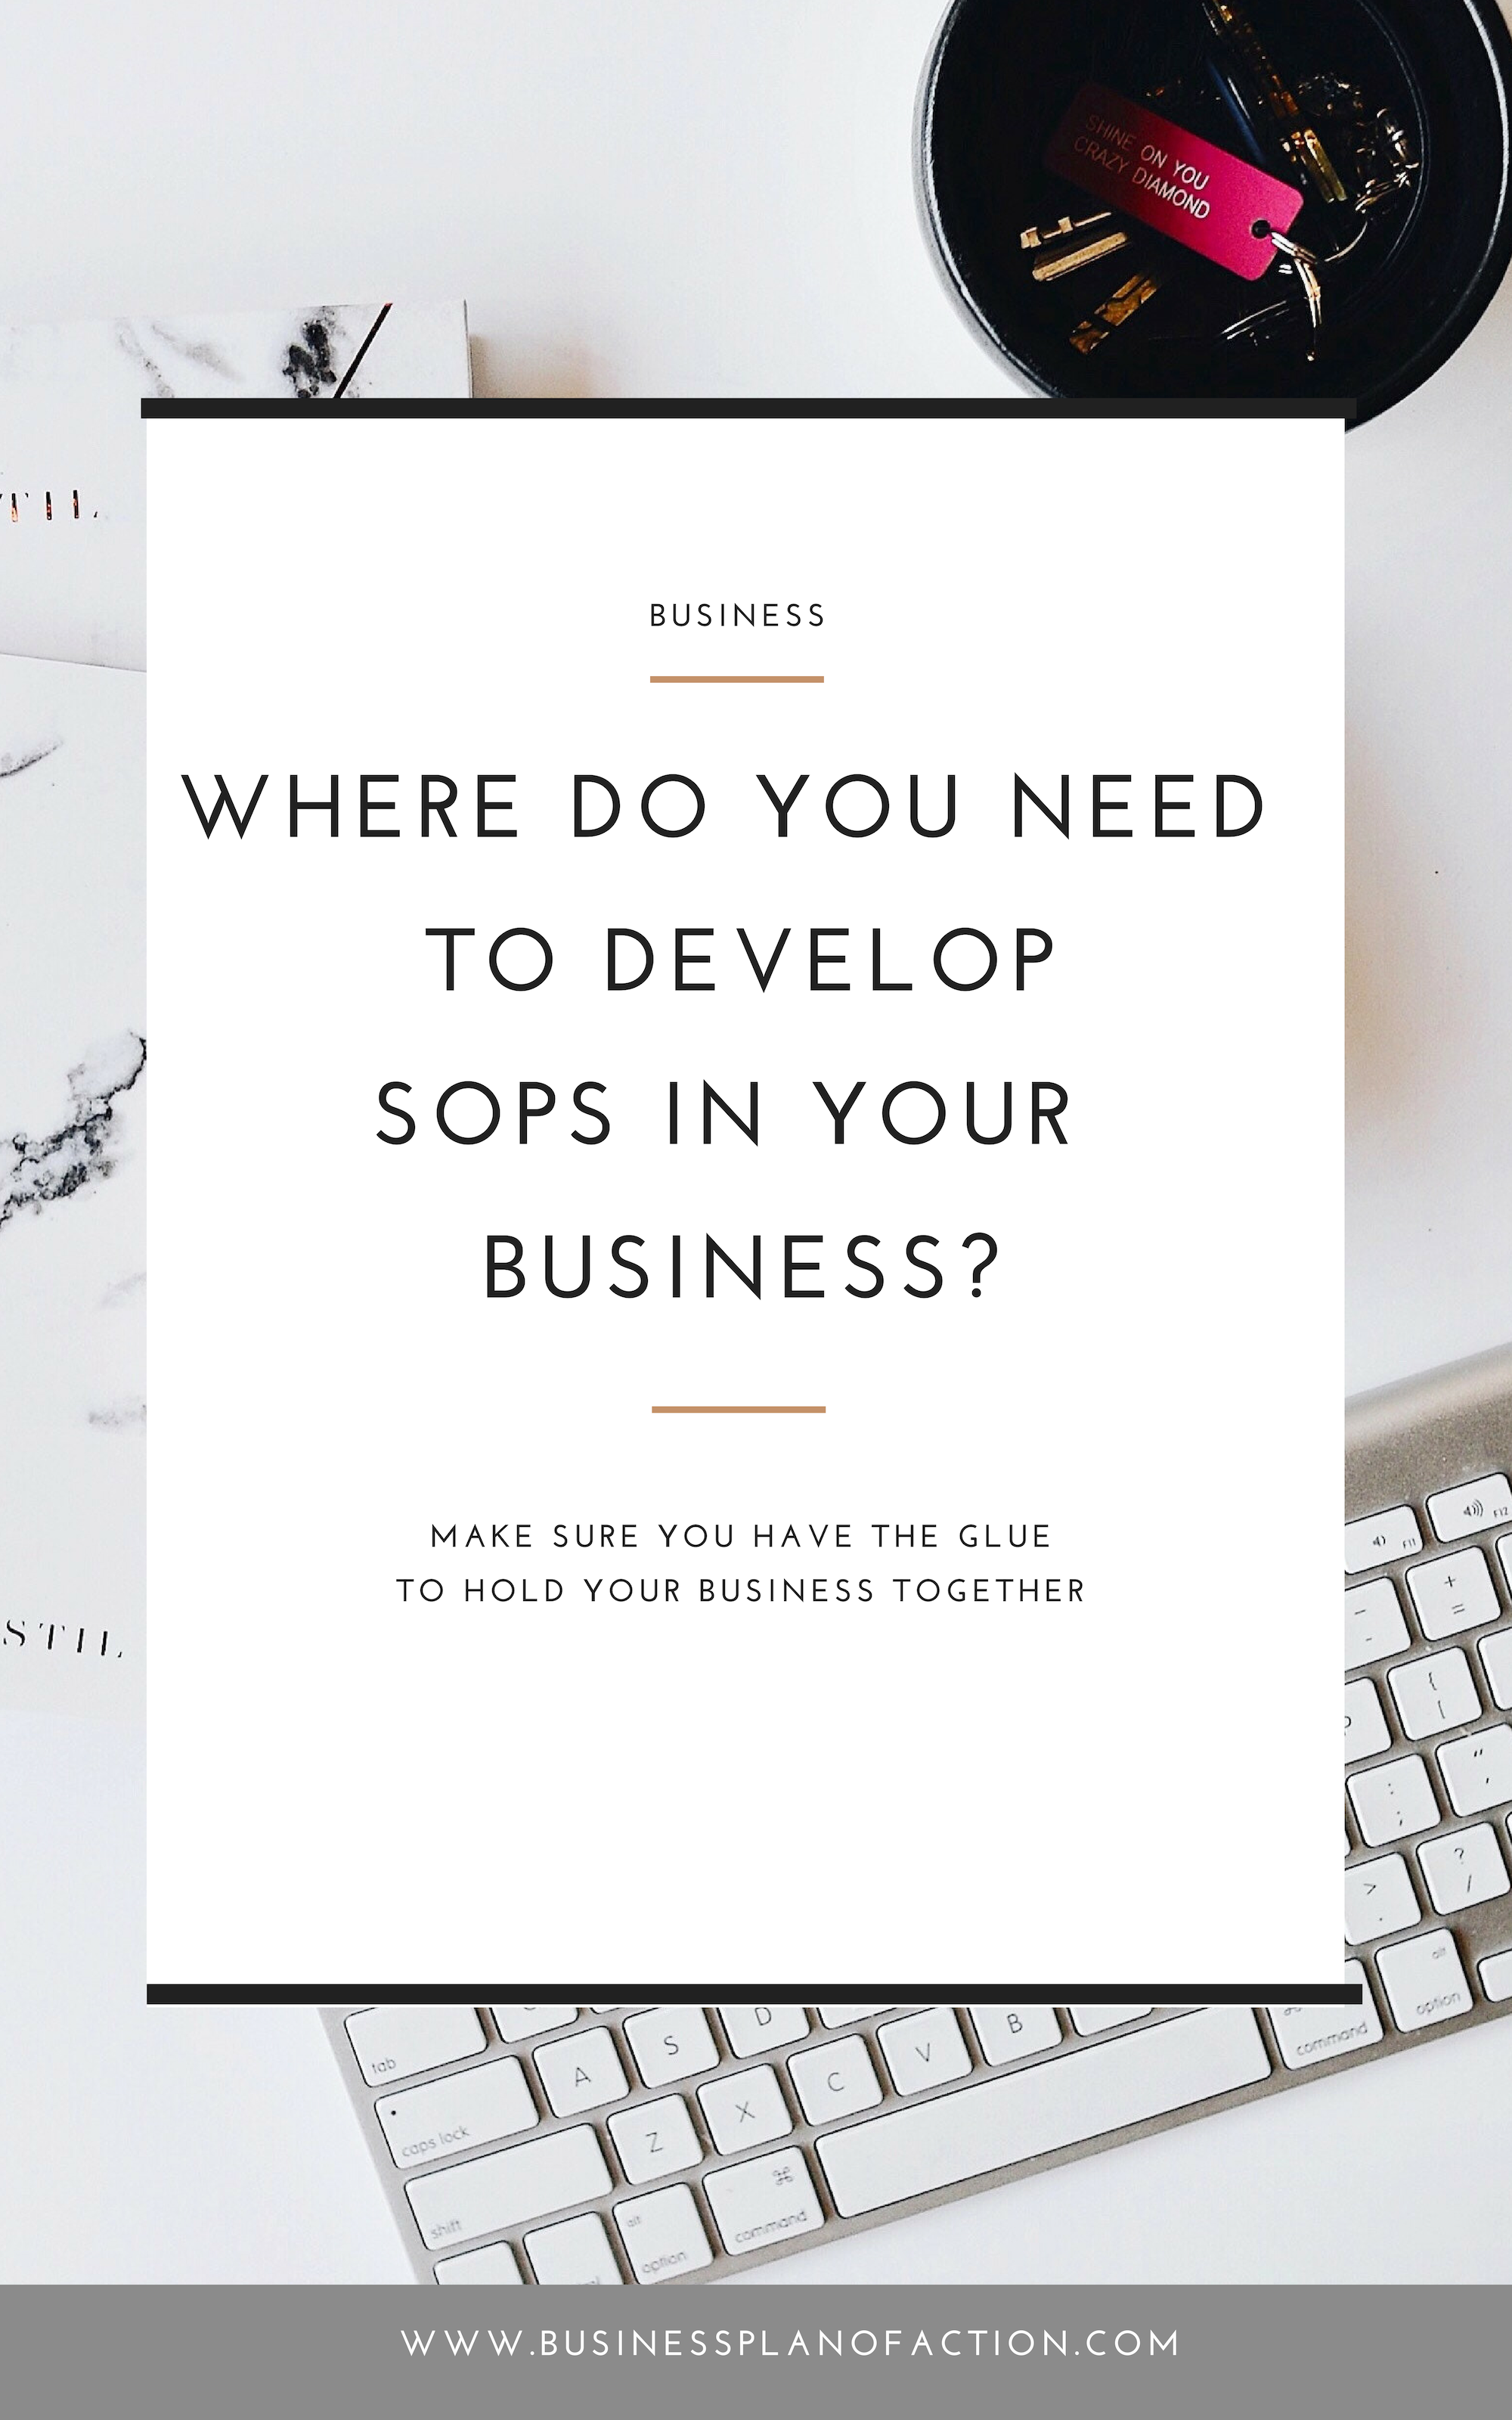 If you don't have standard operating procedures in your business, you're asking for a crisis. Find out what you need in your SOPs--now!